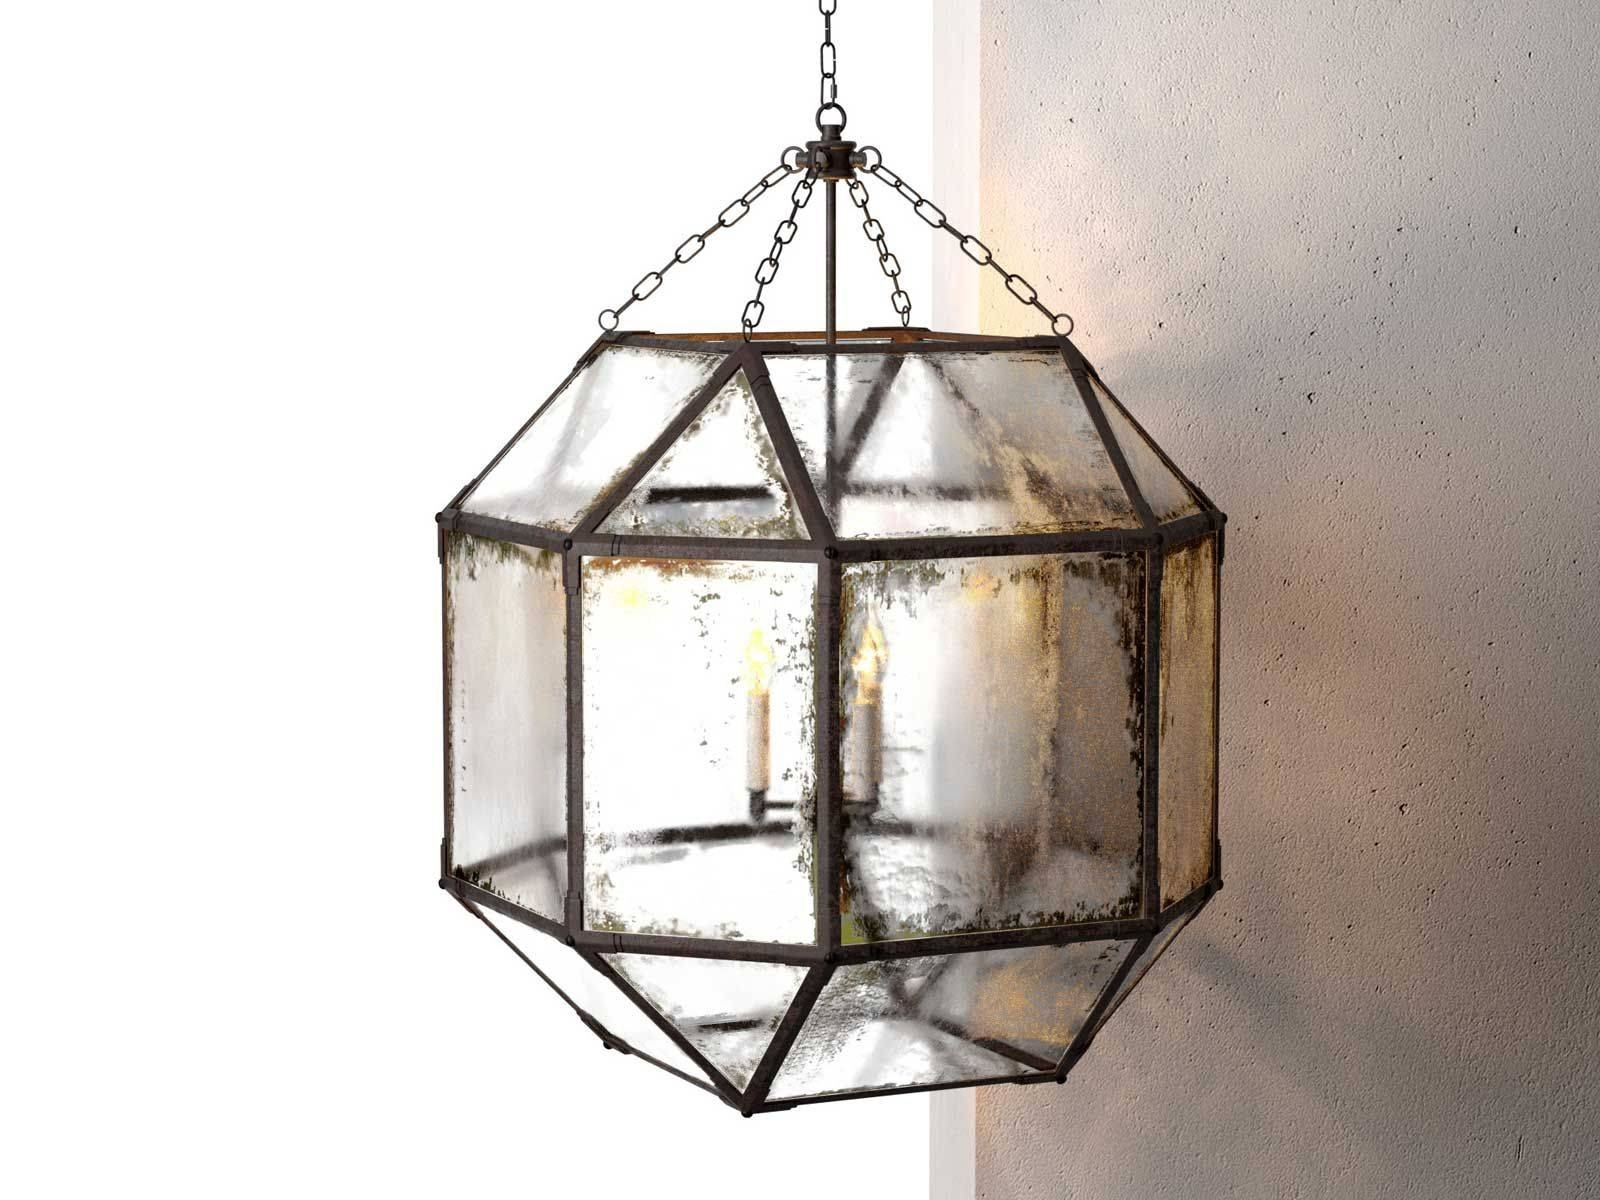 octagonal lights antiqued image glass mirror collection ceiling lighting regarding pendant octagon of